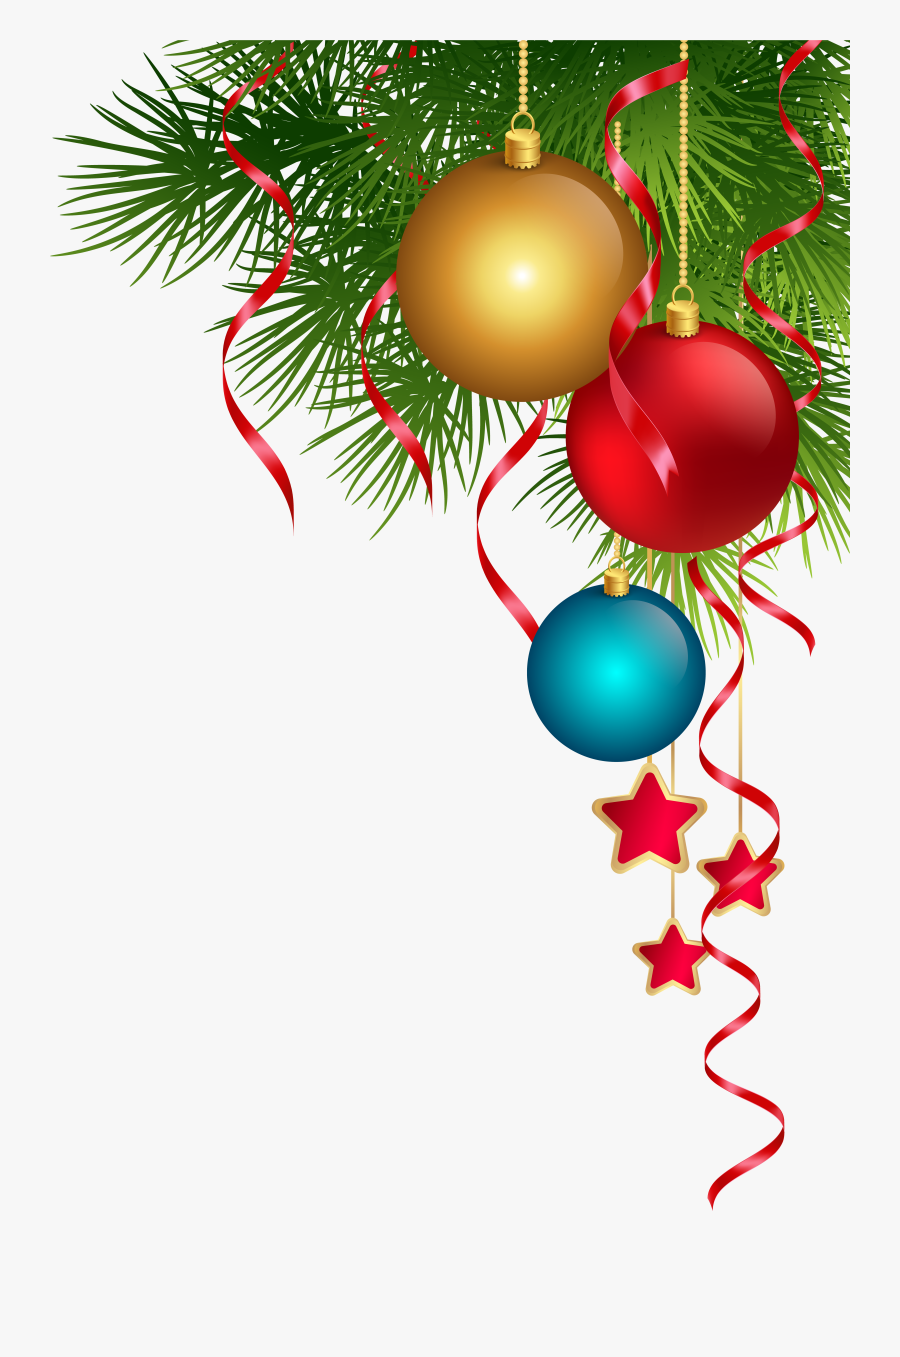 Christmas Clipart Png - Transparent Christmas Decorations Png, Transparent Clipart